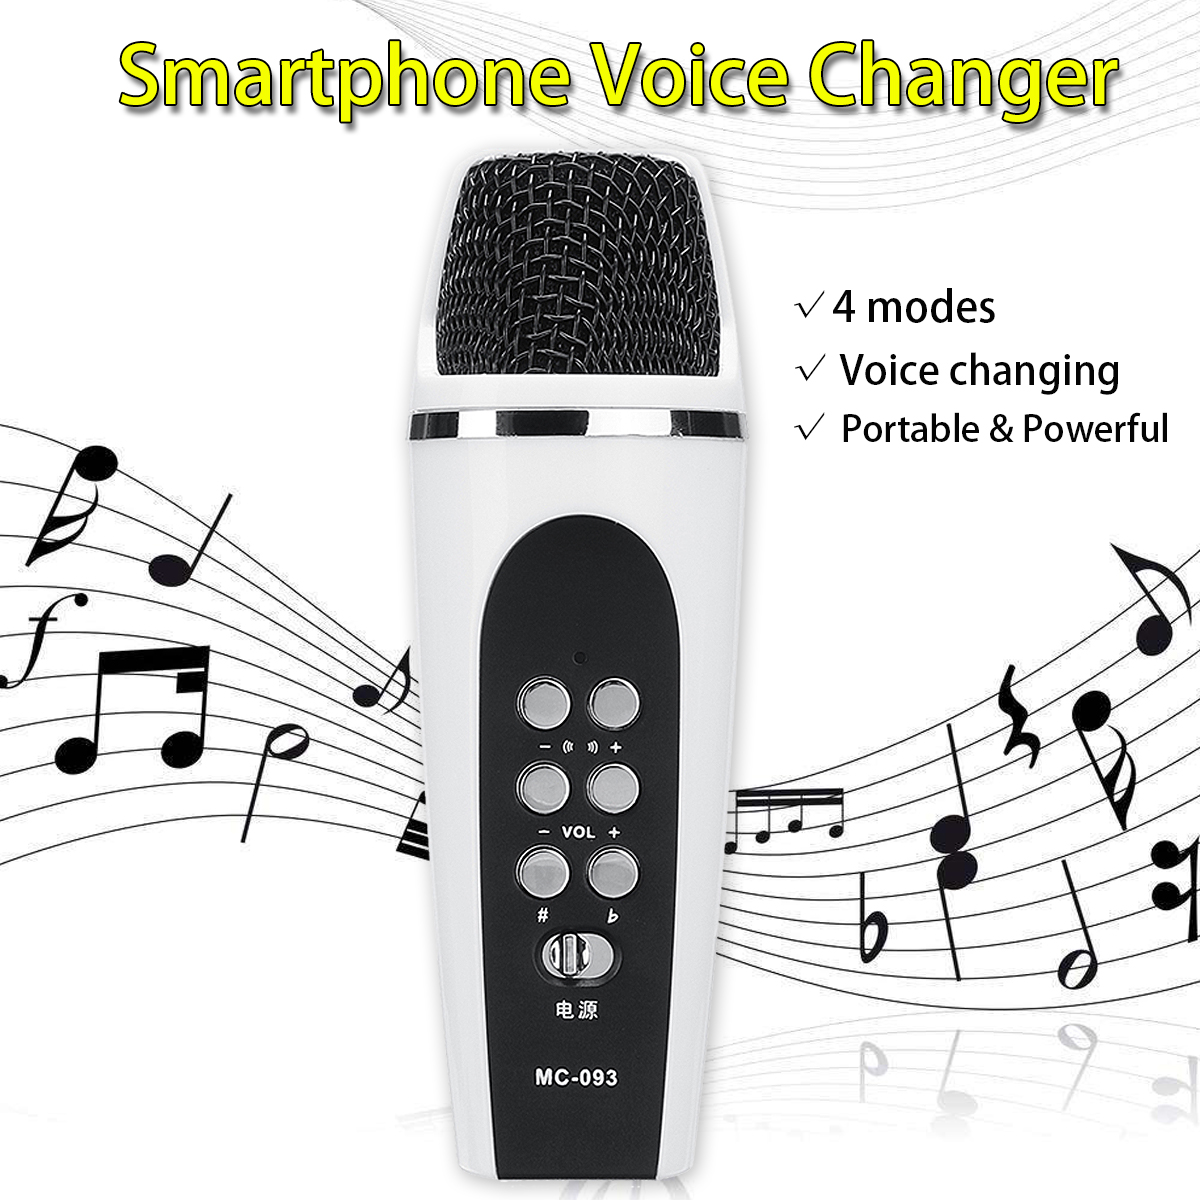 New Portable 4 Modes Smartphone Cellphone Voice Changer Microphone with Earphones Voice Free Switching Microphones Entertainment